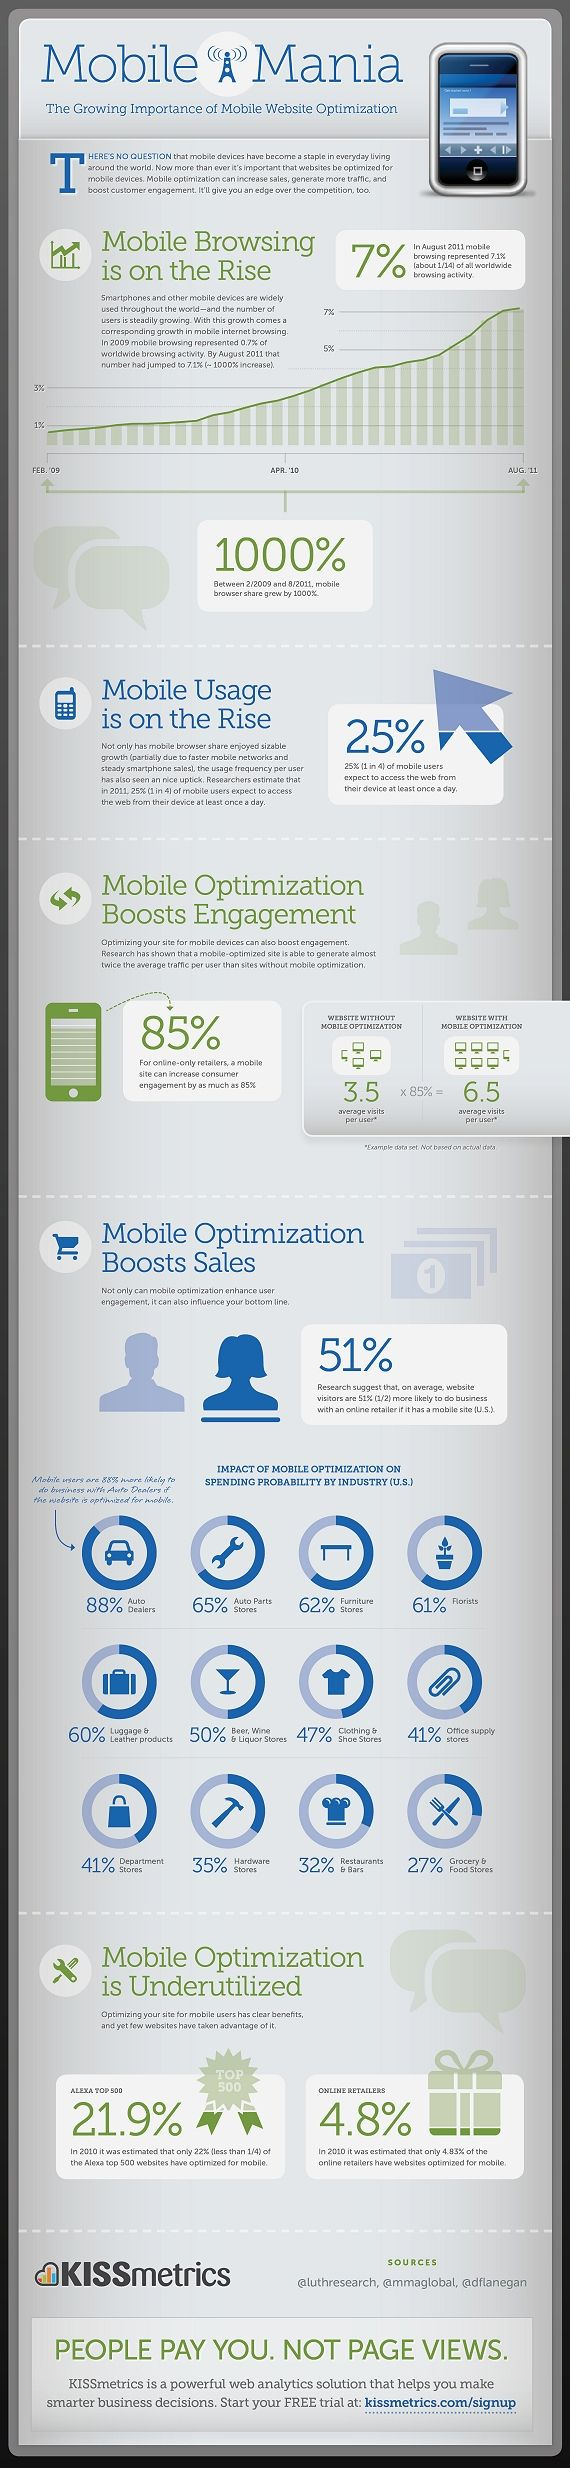 Mobile Mania and the Importance of Optimizing the Web for Mobile